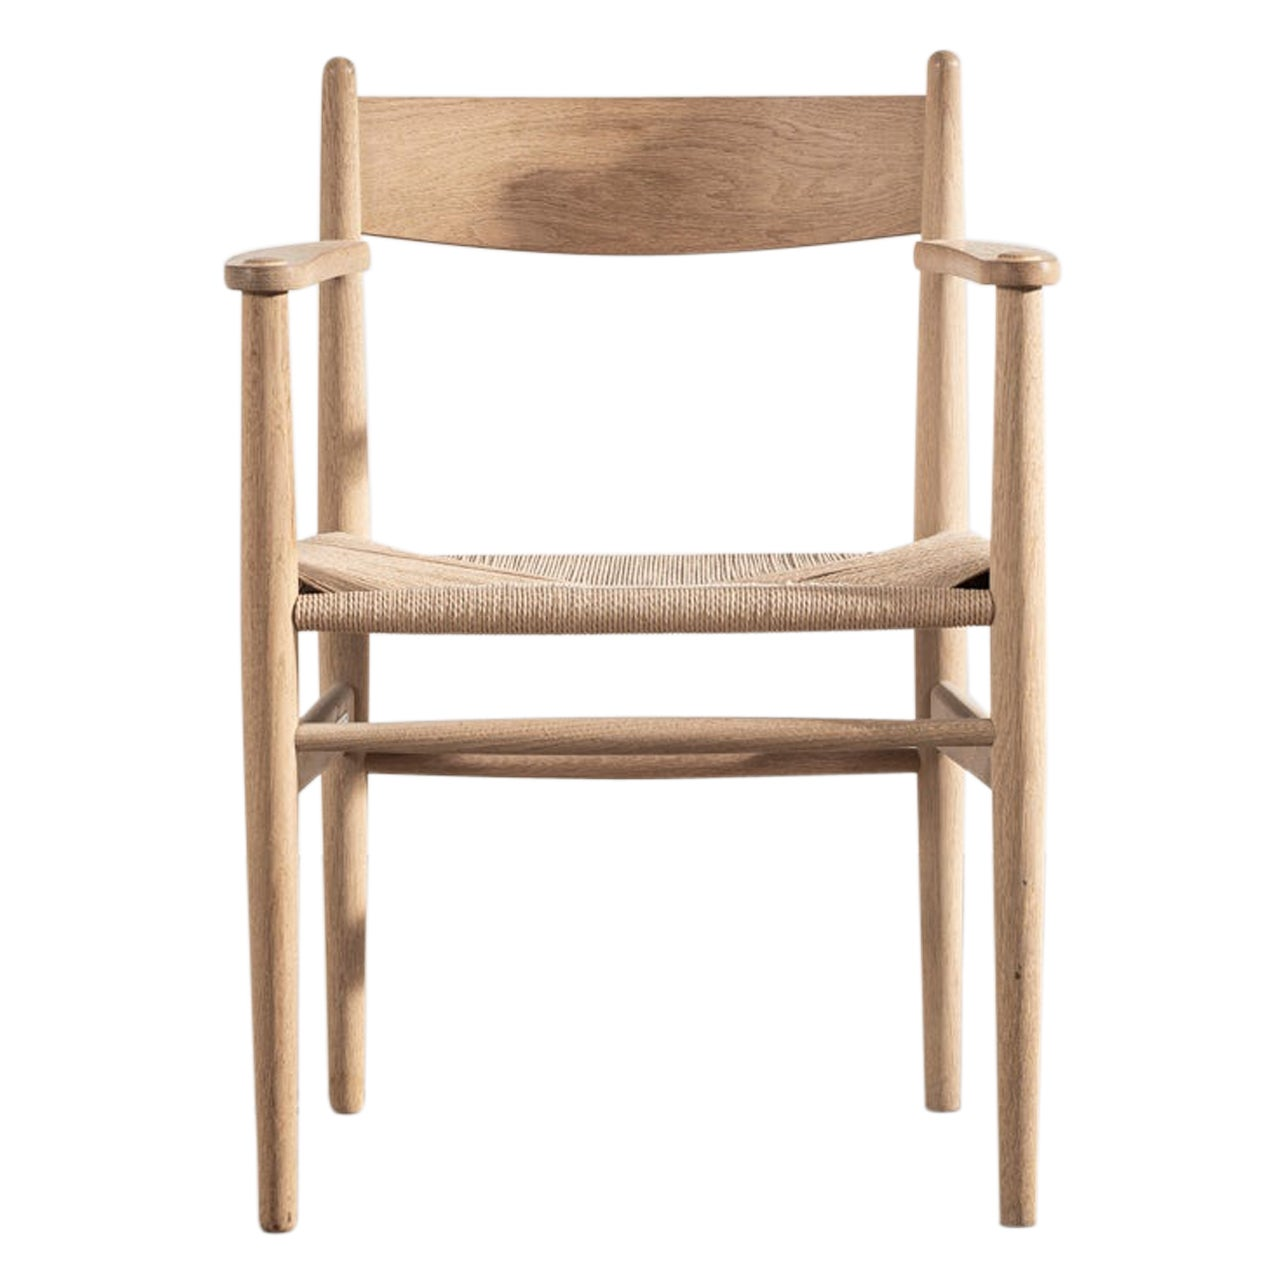 CH37 Chair in Oak with Natural Paper Cord by Hans Wegner